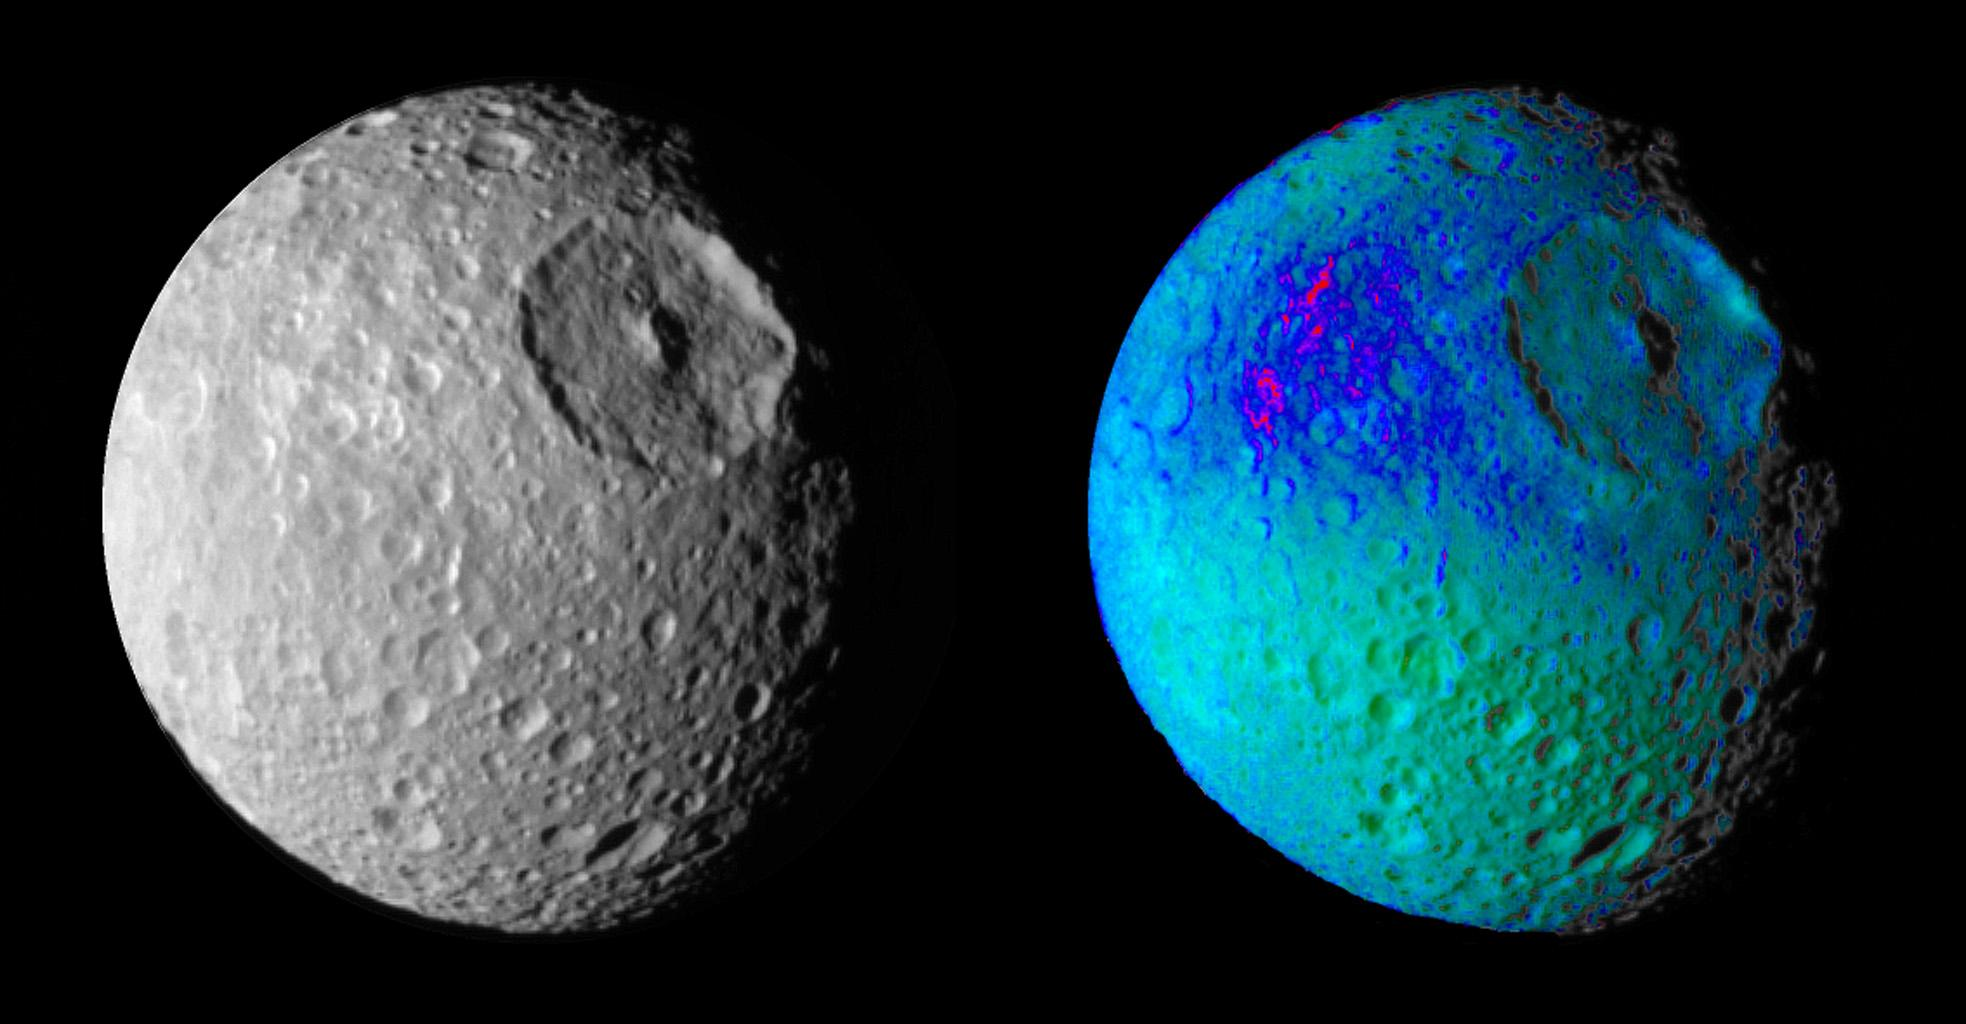 False color images of Saturn's moon, Mimas, reveal variation in either the composition or texture across its surface.